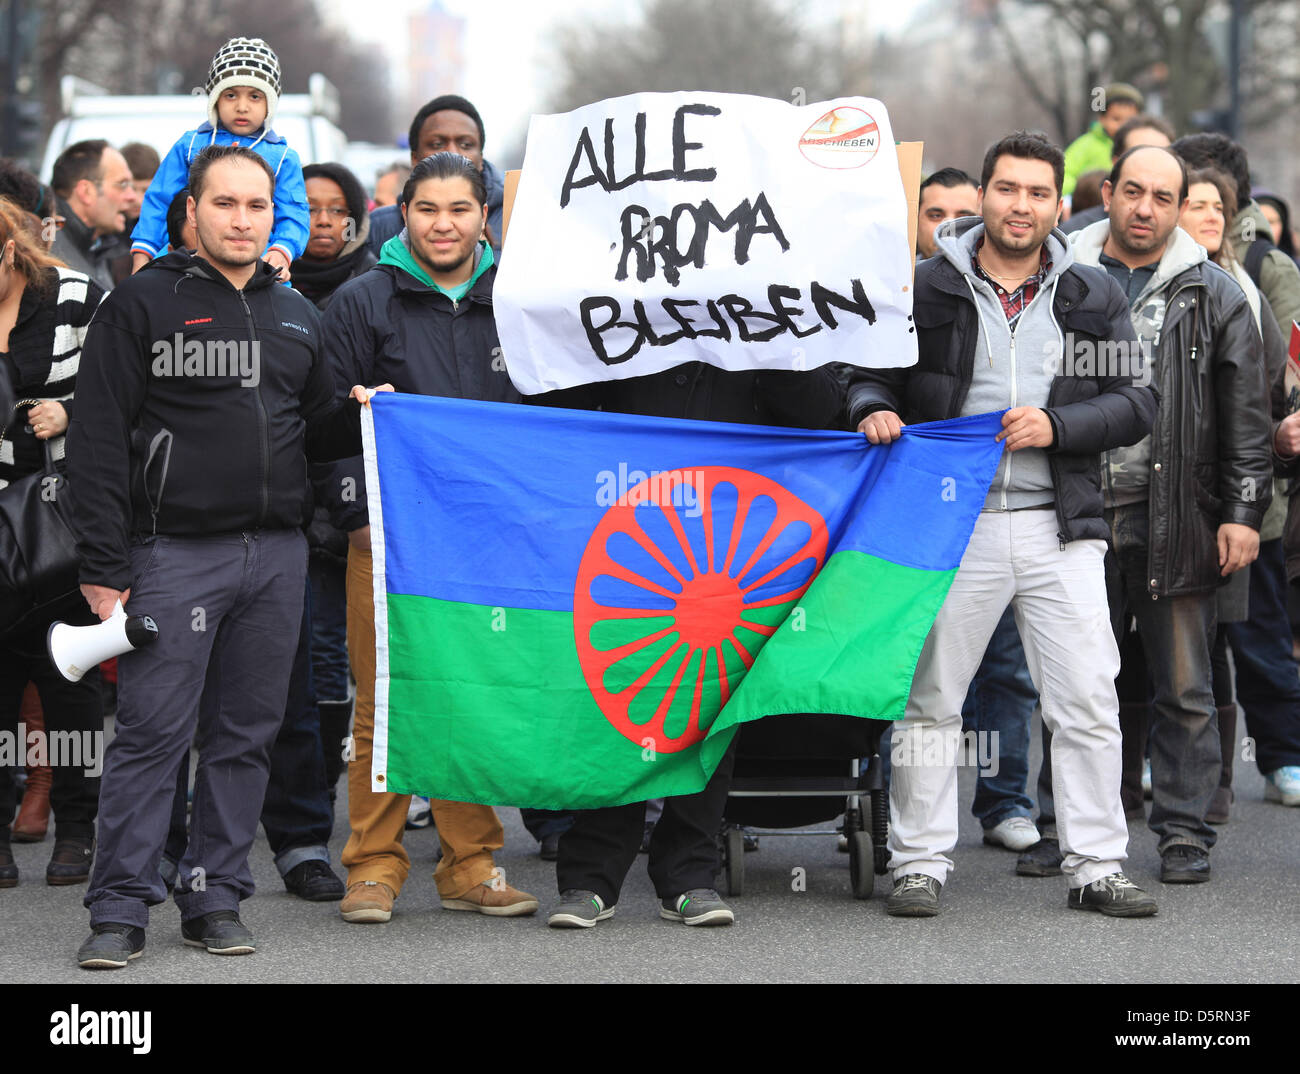 'All Roma will stay' is written on a placard during a demonstration in Berlin,Germany, 08April - Stock Image